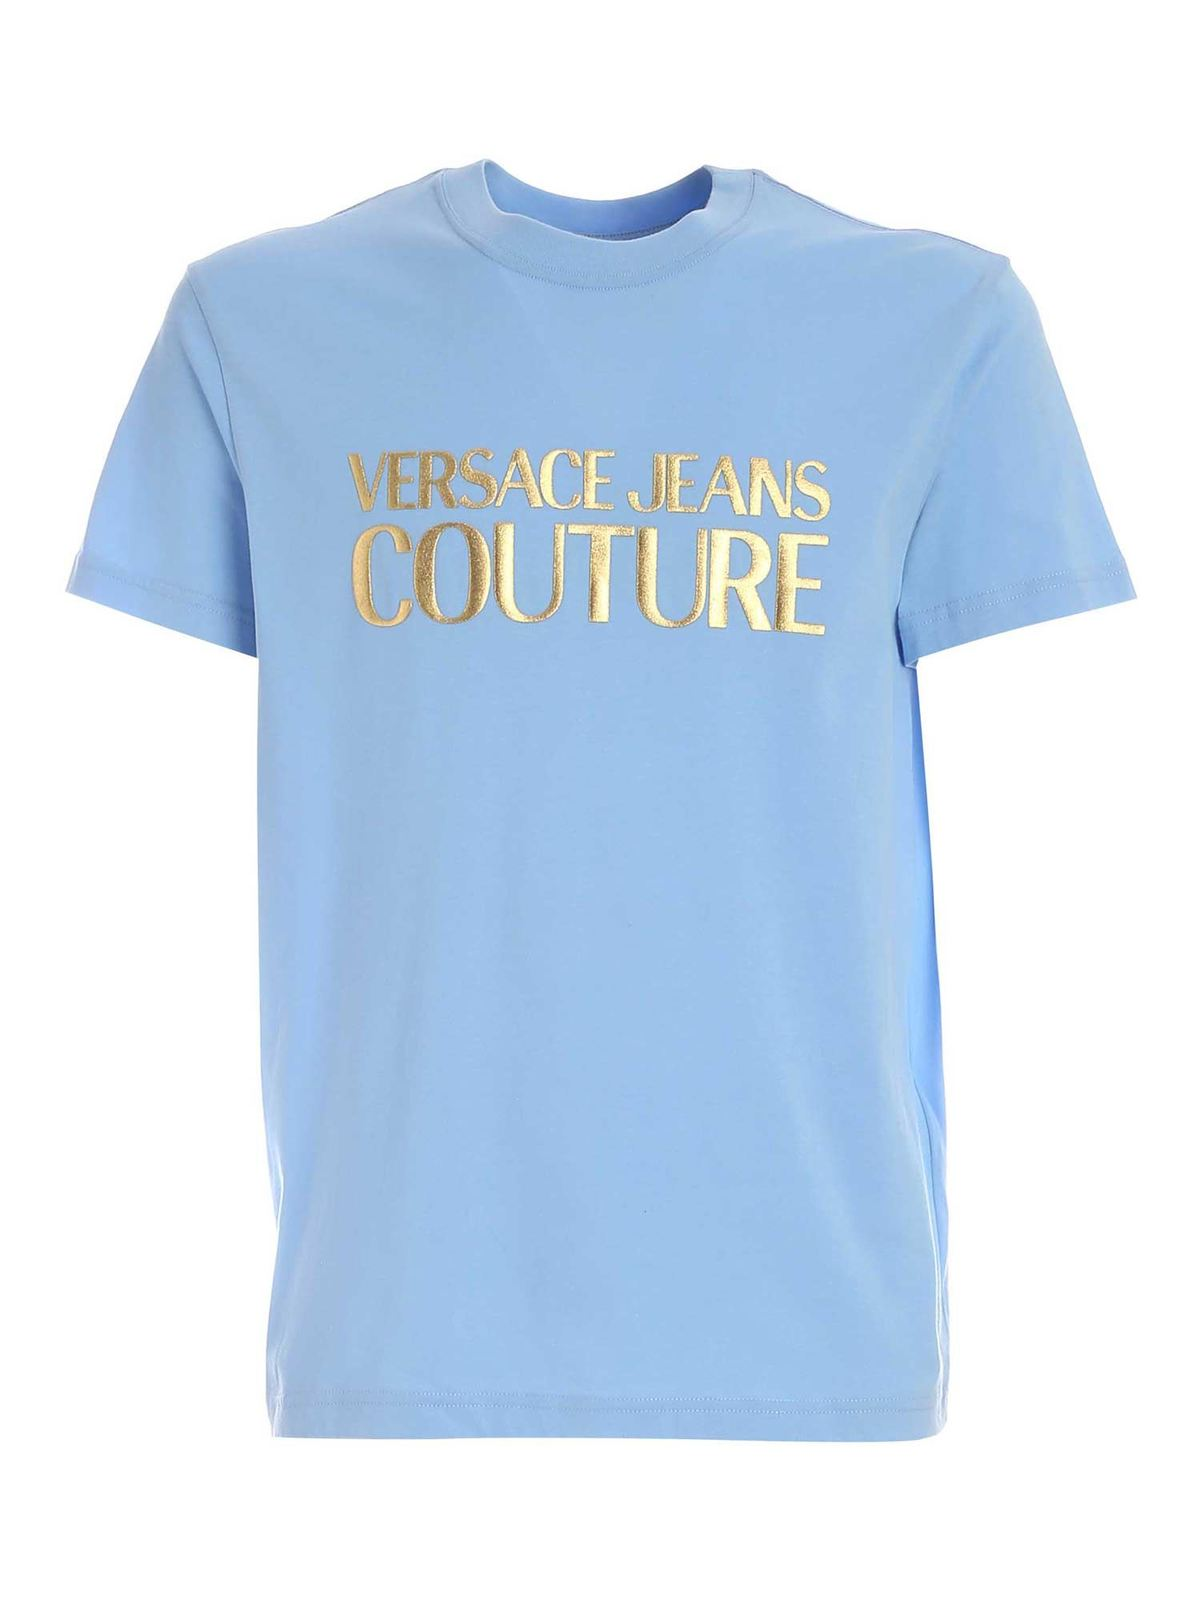 VERSACE JEANS COUTURE LAMINATED RUBBER LOGO T-SHIRT IN LIGHT BLUE